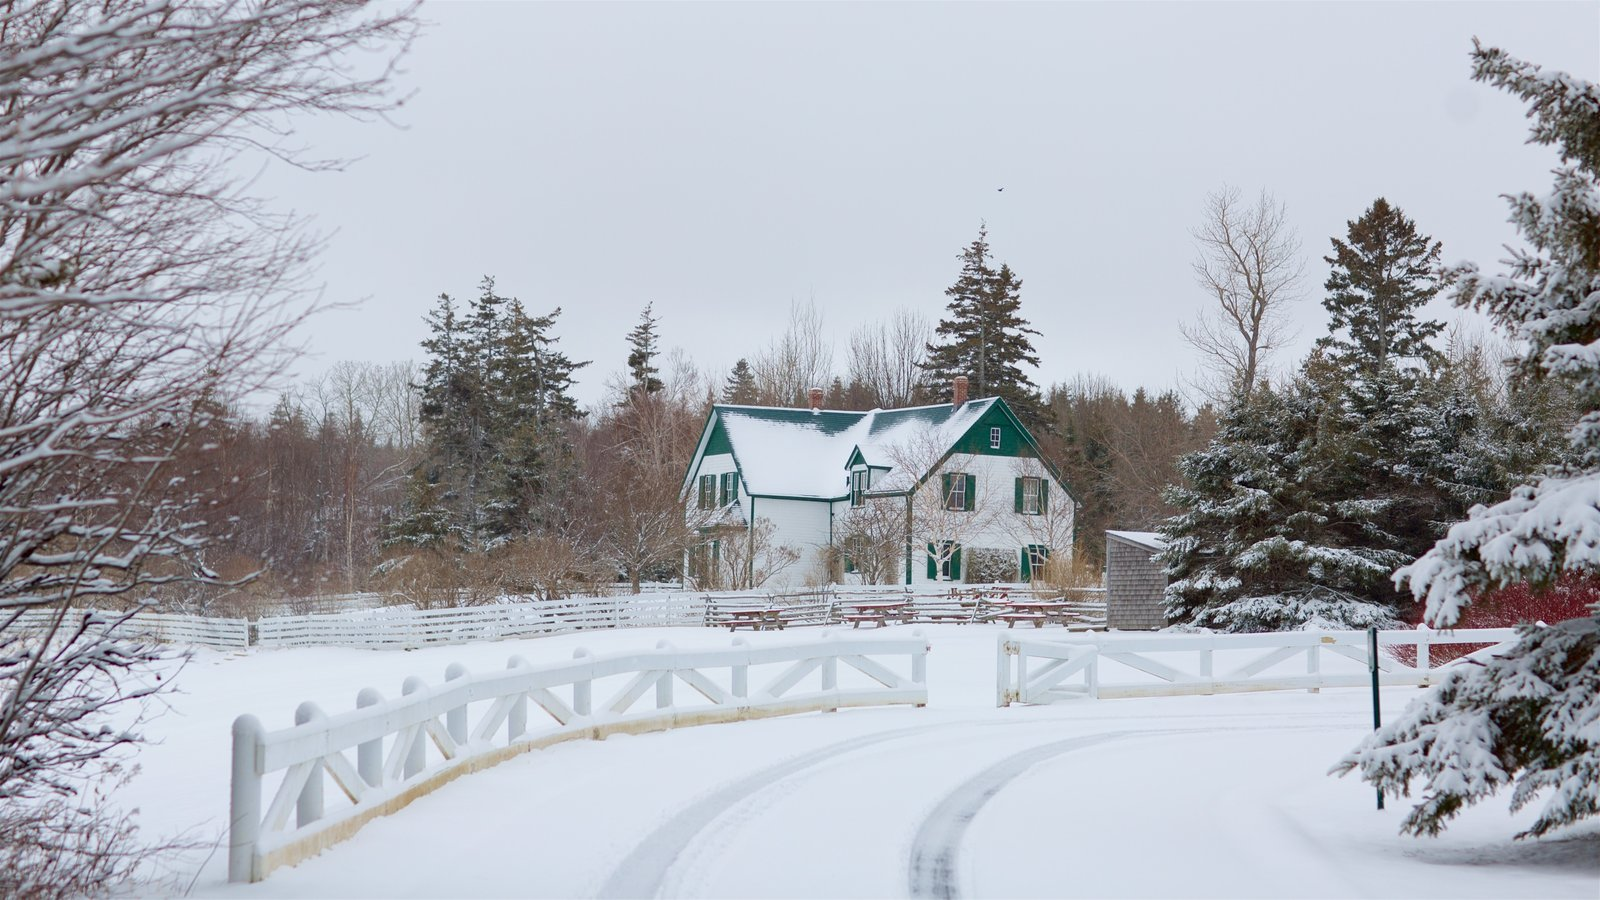 Green Gables showing snow and a house